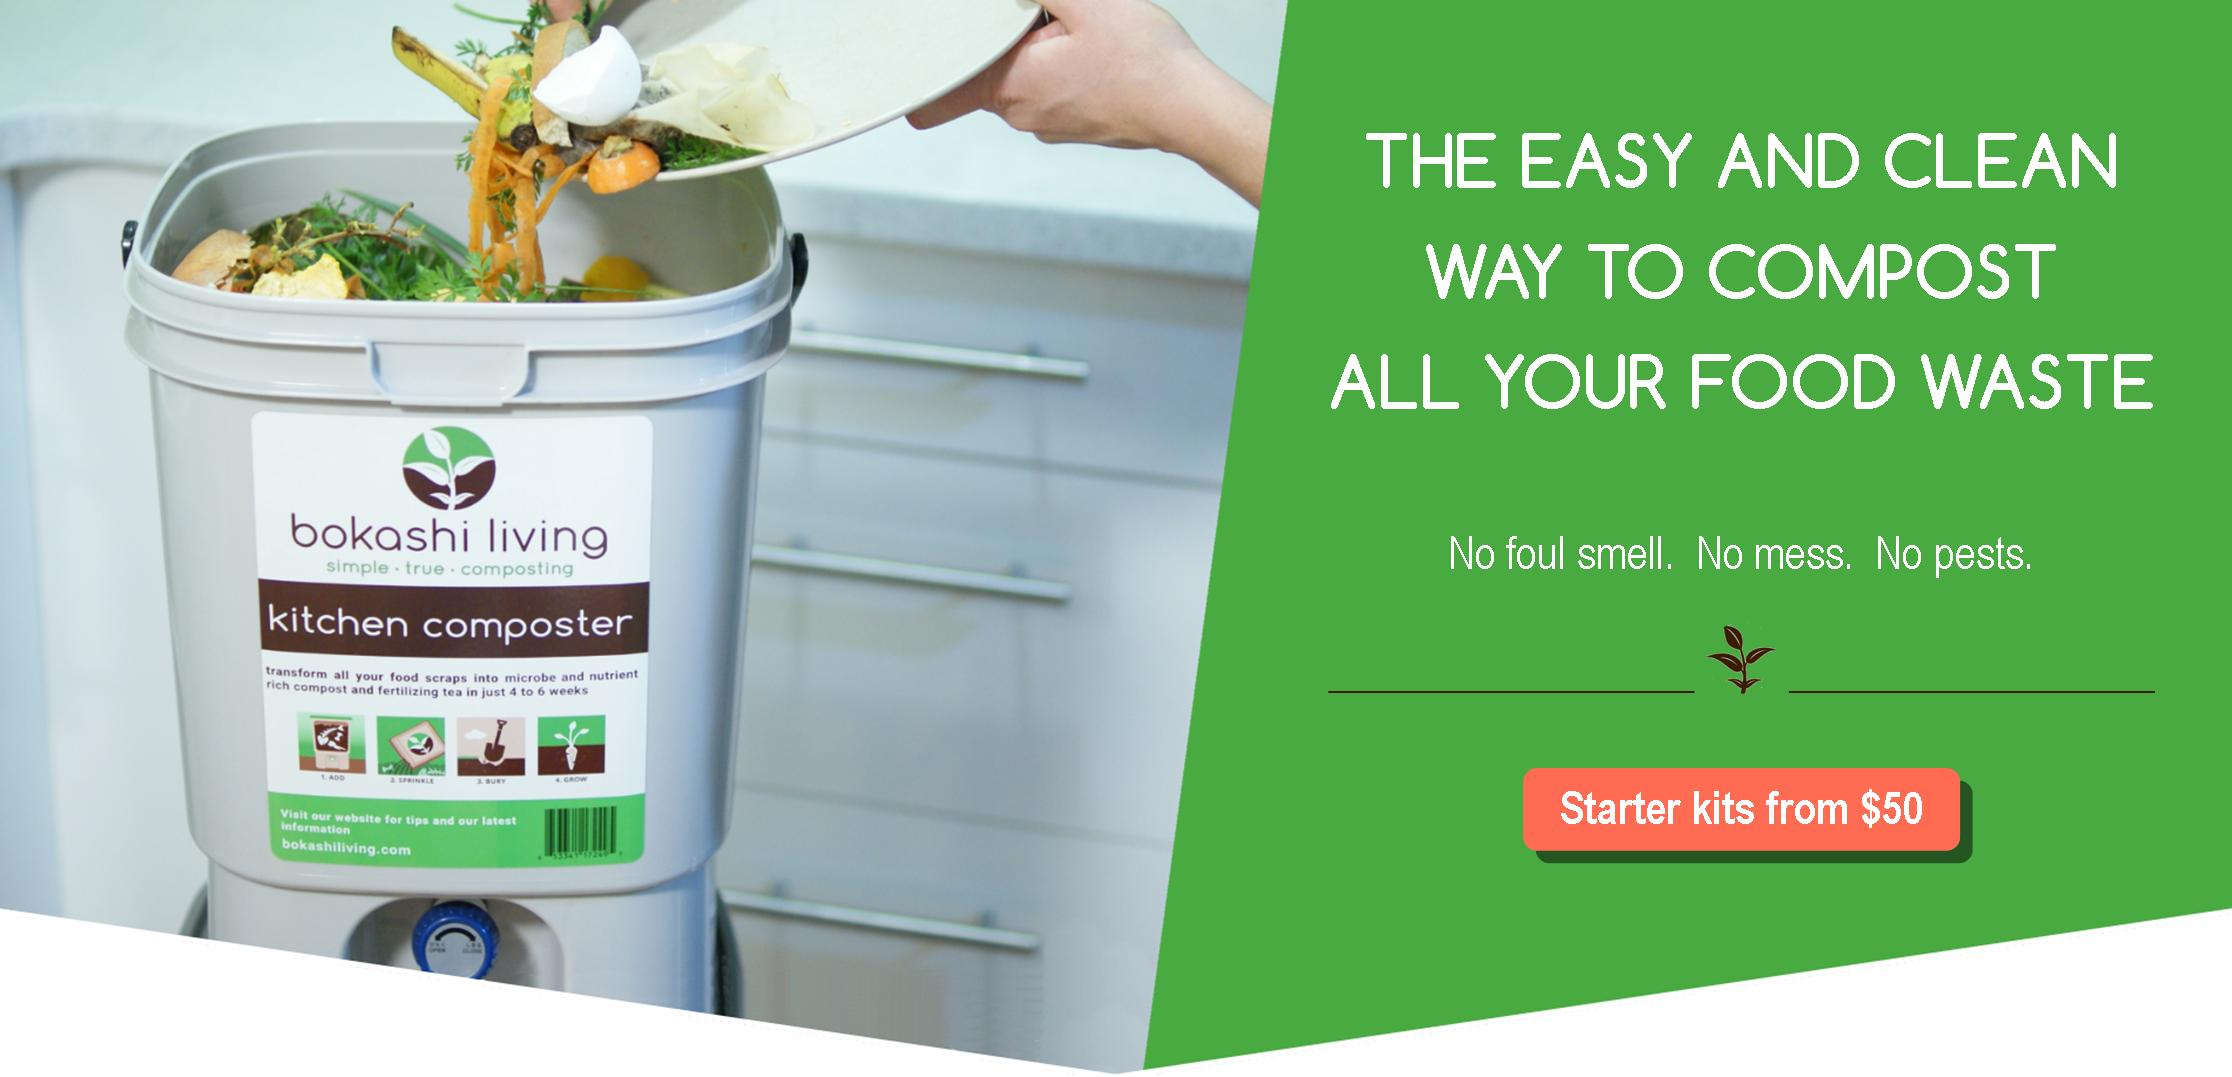 Bokashi Composting: The easy and clean way to compost all your food waste